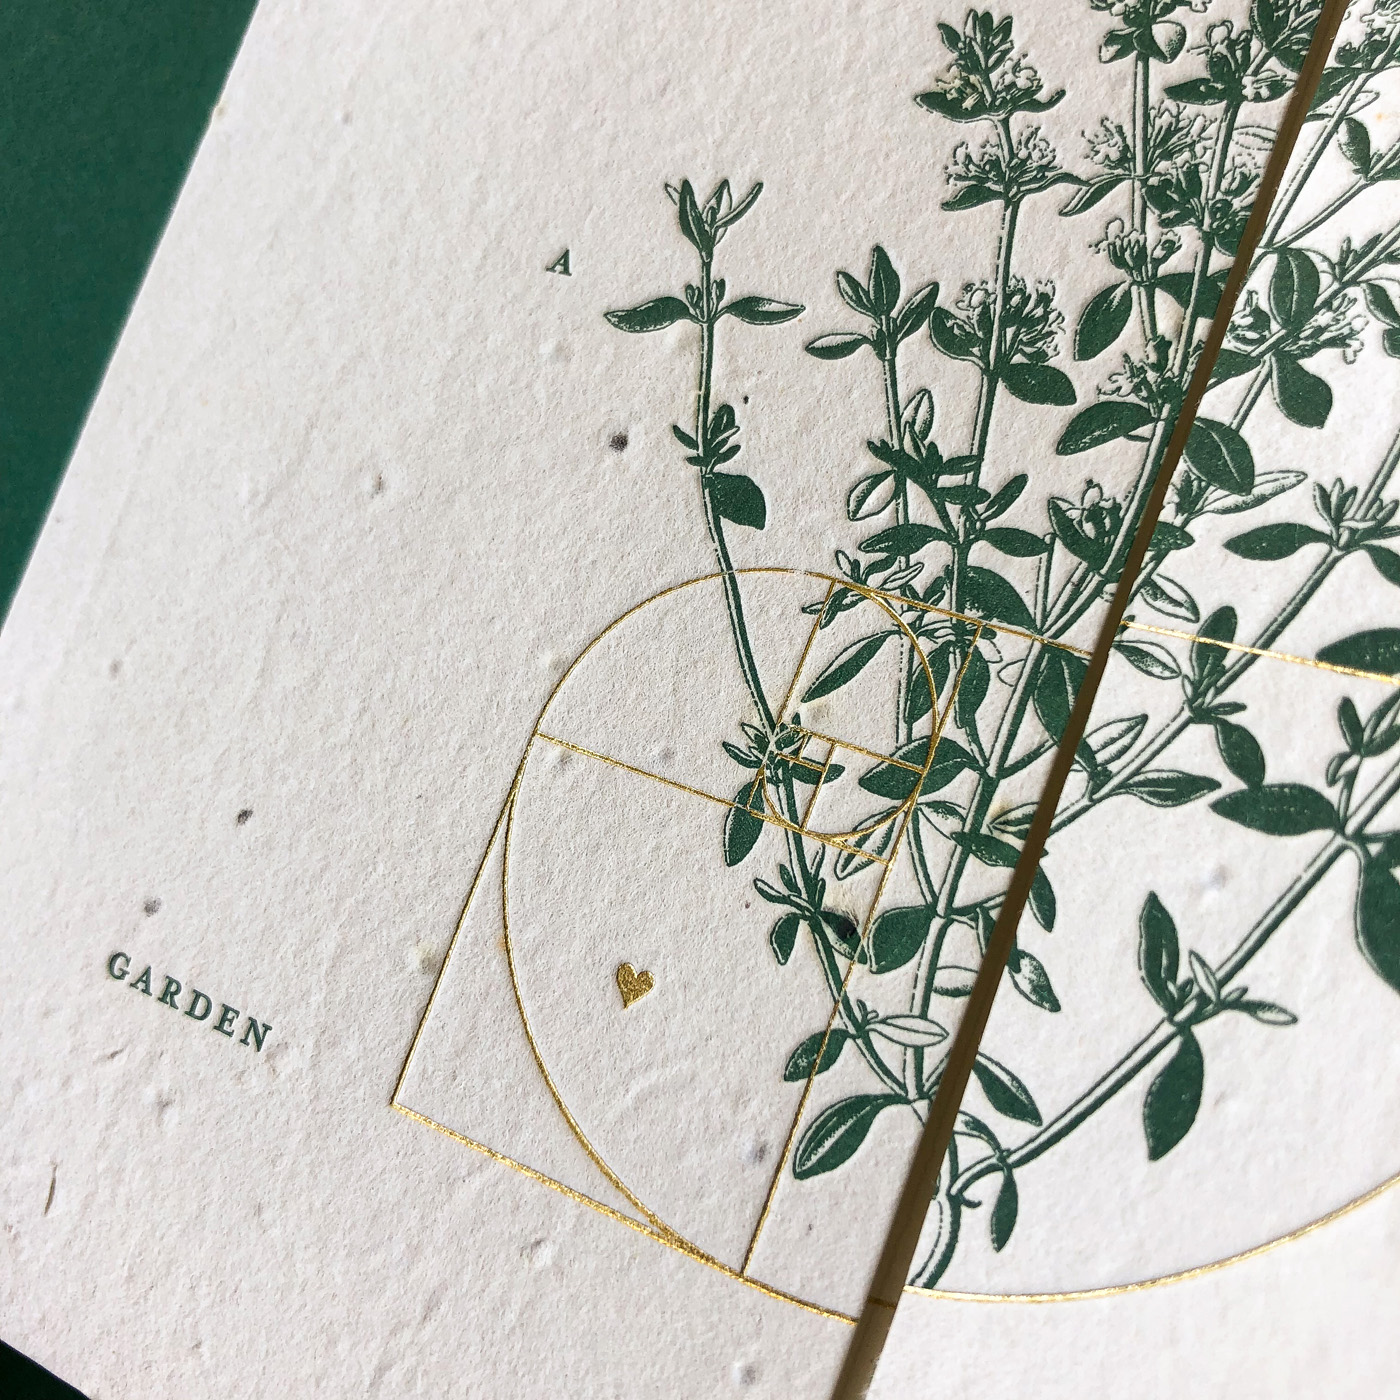 Letterpress and gold foil invitations designed for Cassy and Ben on handmade seed paper 2